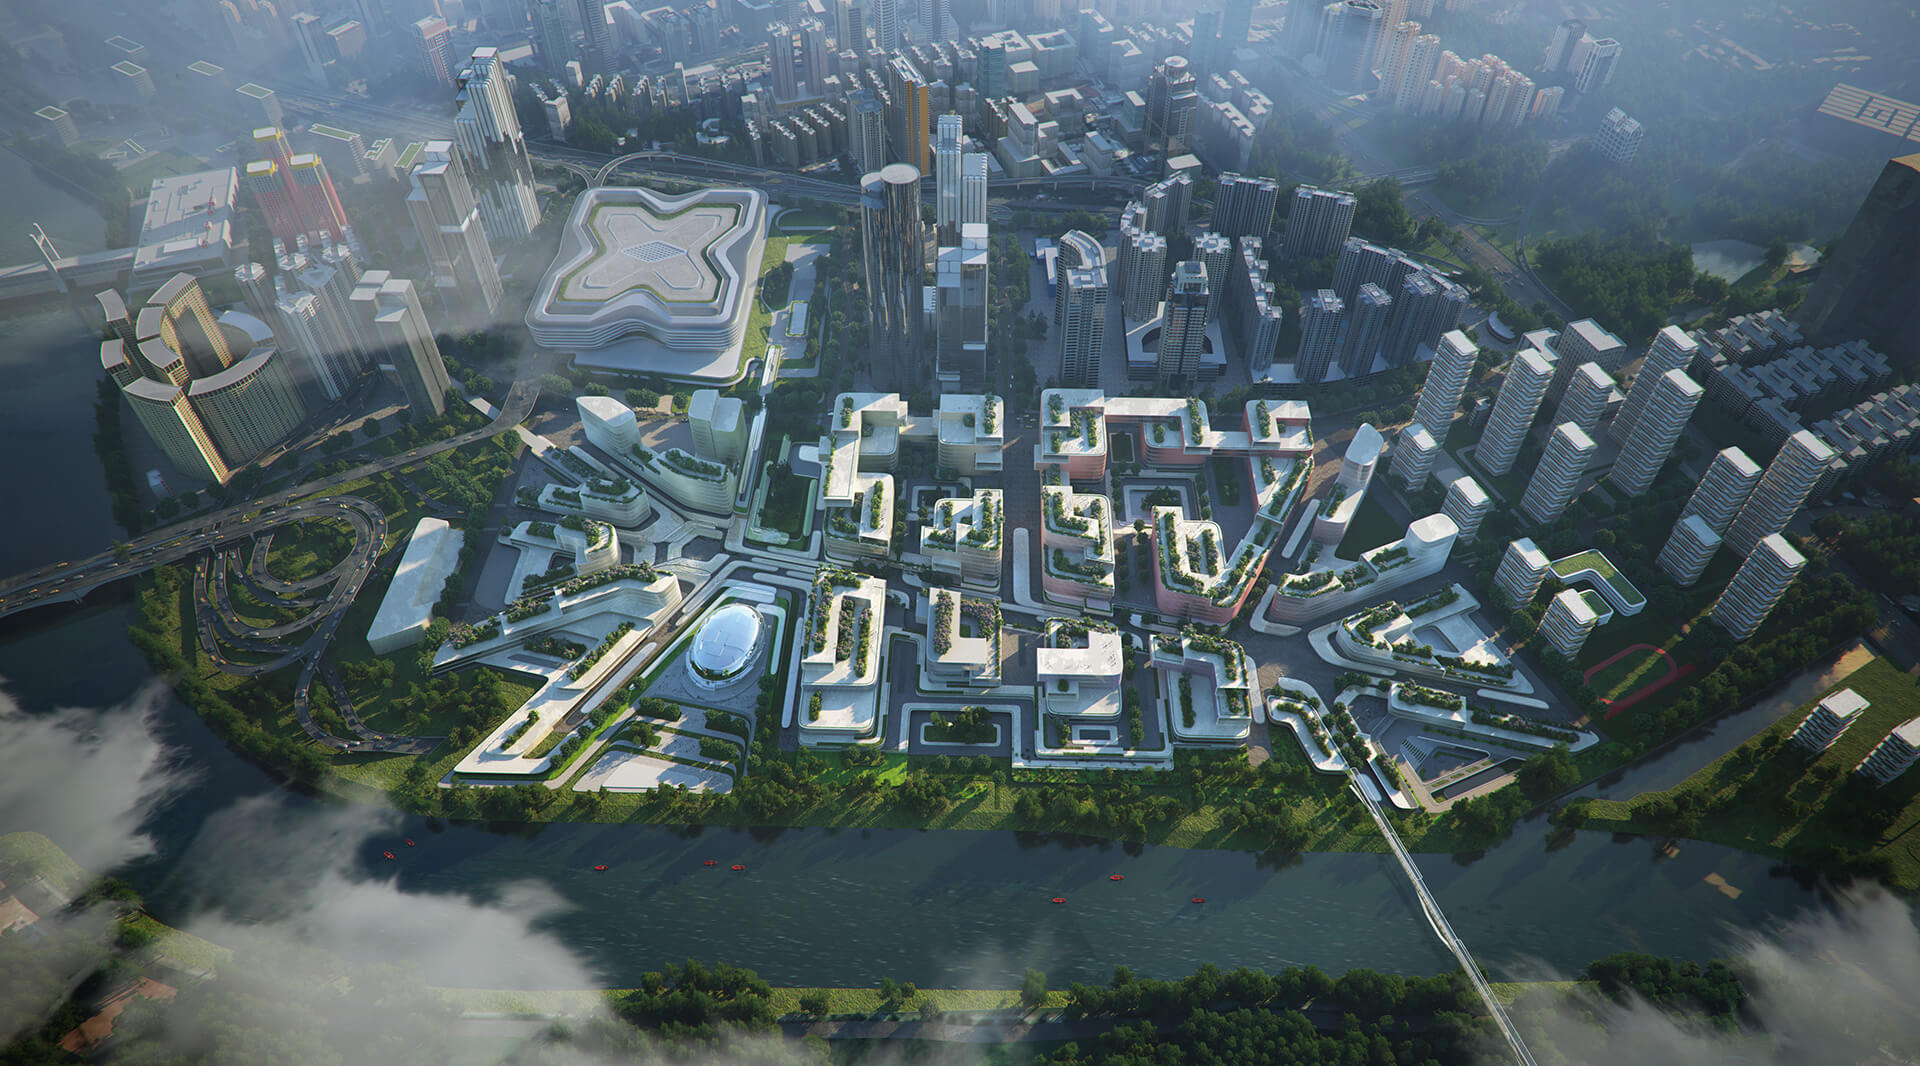 Bird's eye view of the proposed development | Huanggang Port Area Masterplan | Zaha Hadid Architects | STIRworld